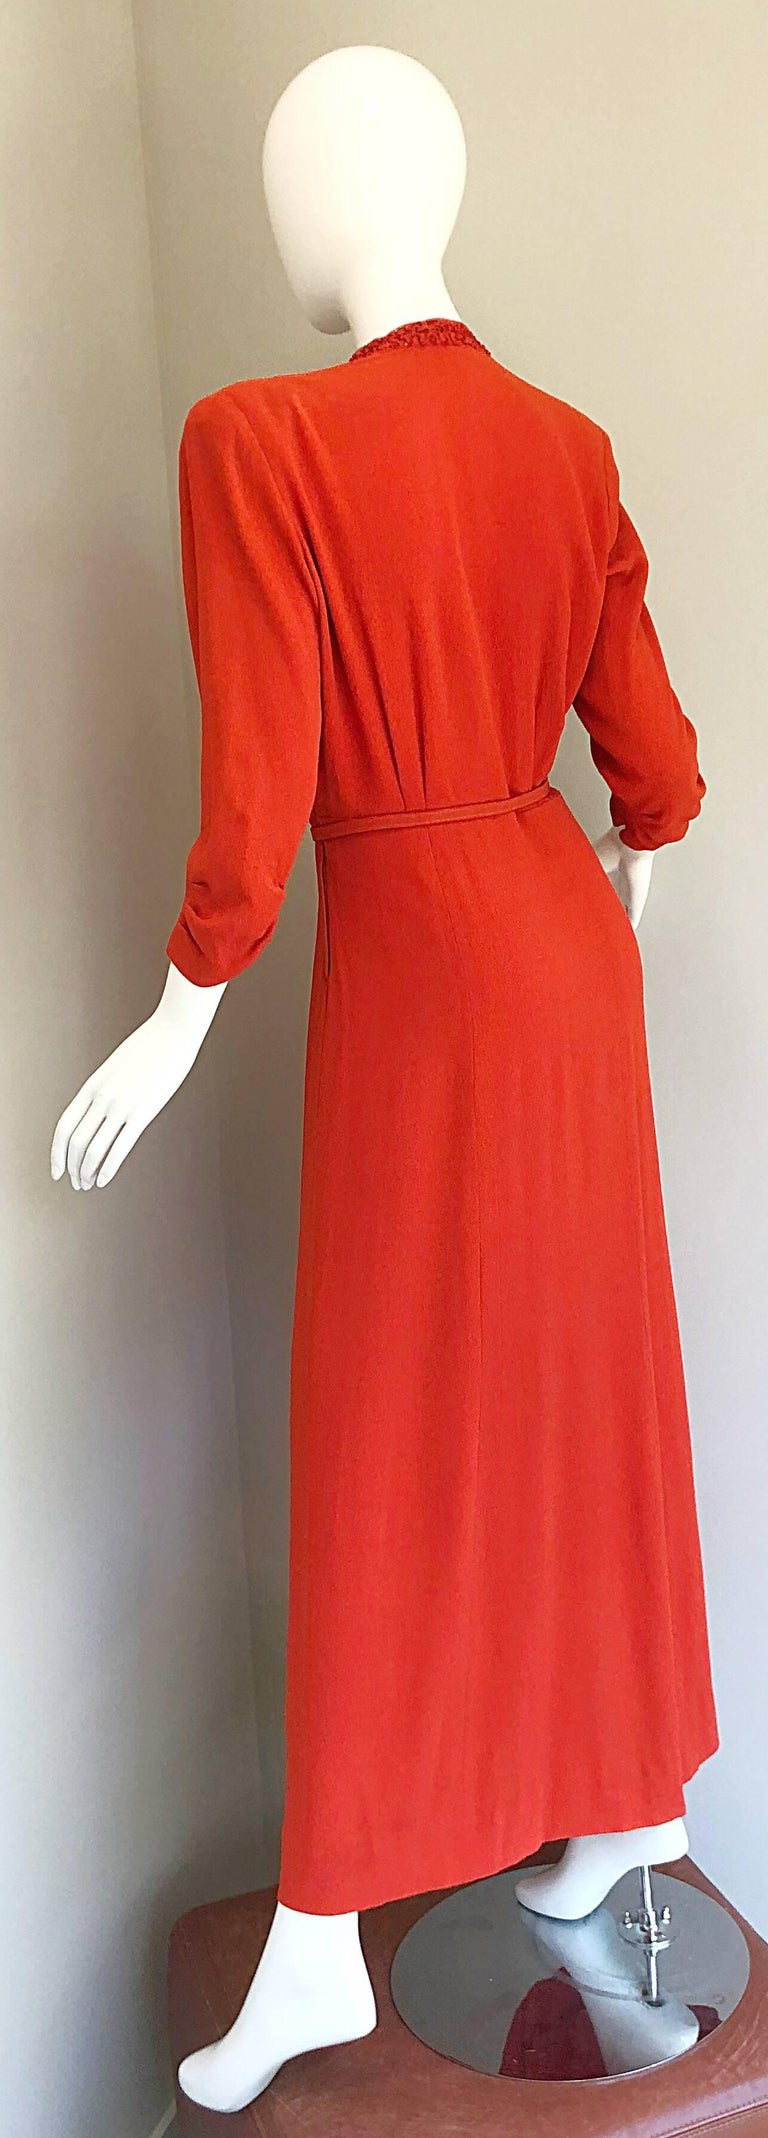 2f3f5f6867b1 1940s Kornhauser Original Burnt Orange Beaded Vintage 40s Couture Crepe Gown  For Sale 4